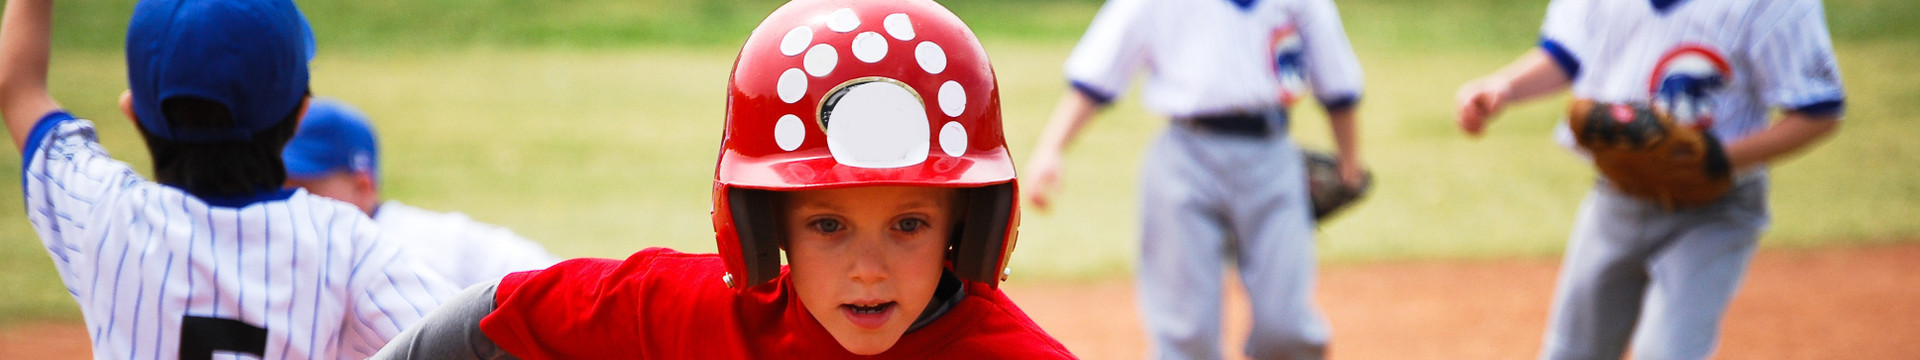 Make Your Next Sports Hotel A Touchdown In Branson  - kids playing baseball